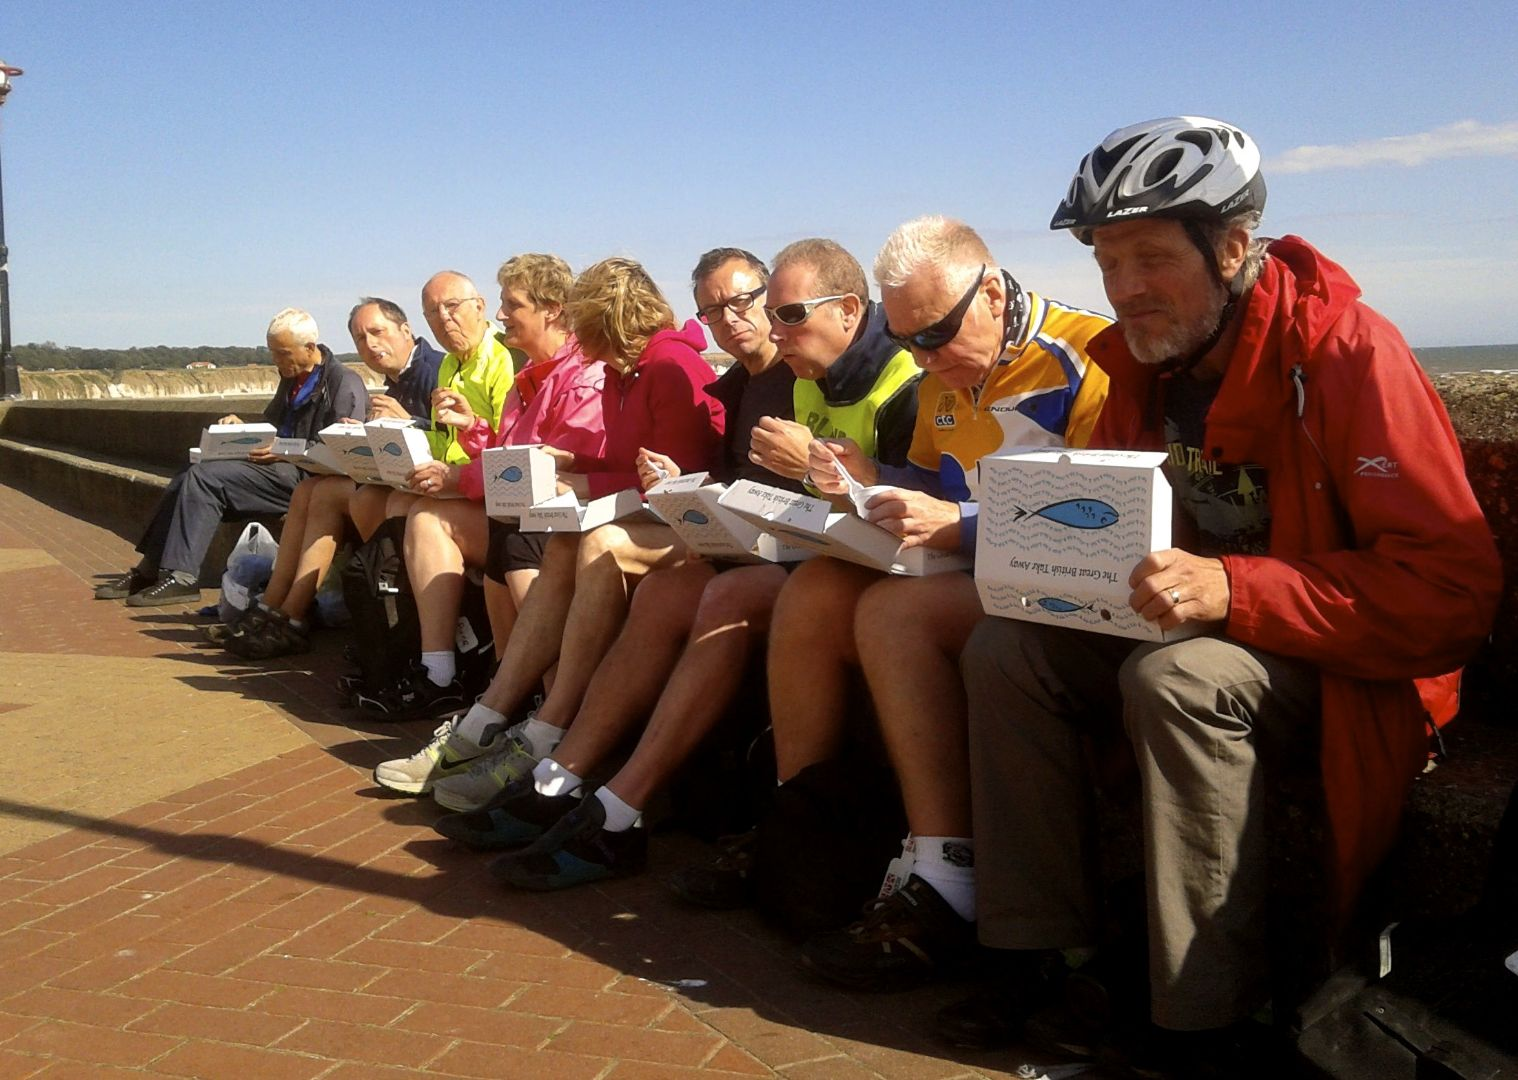 _Staff.223.13426.jpg - UK - Way of the Roses - Supported Leisure Cycling Holiday - Leisure Cycling